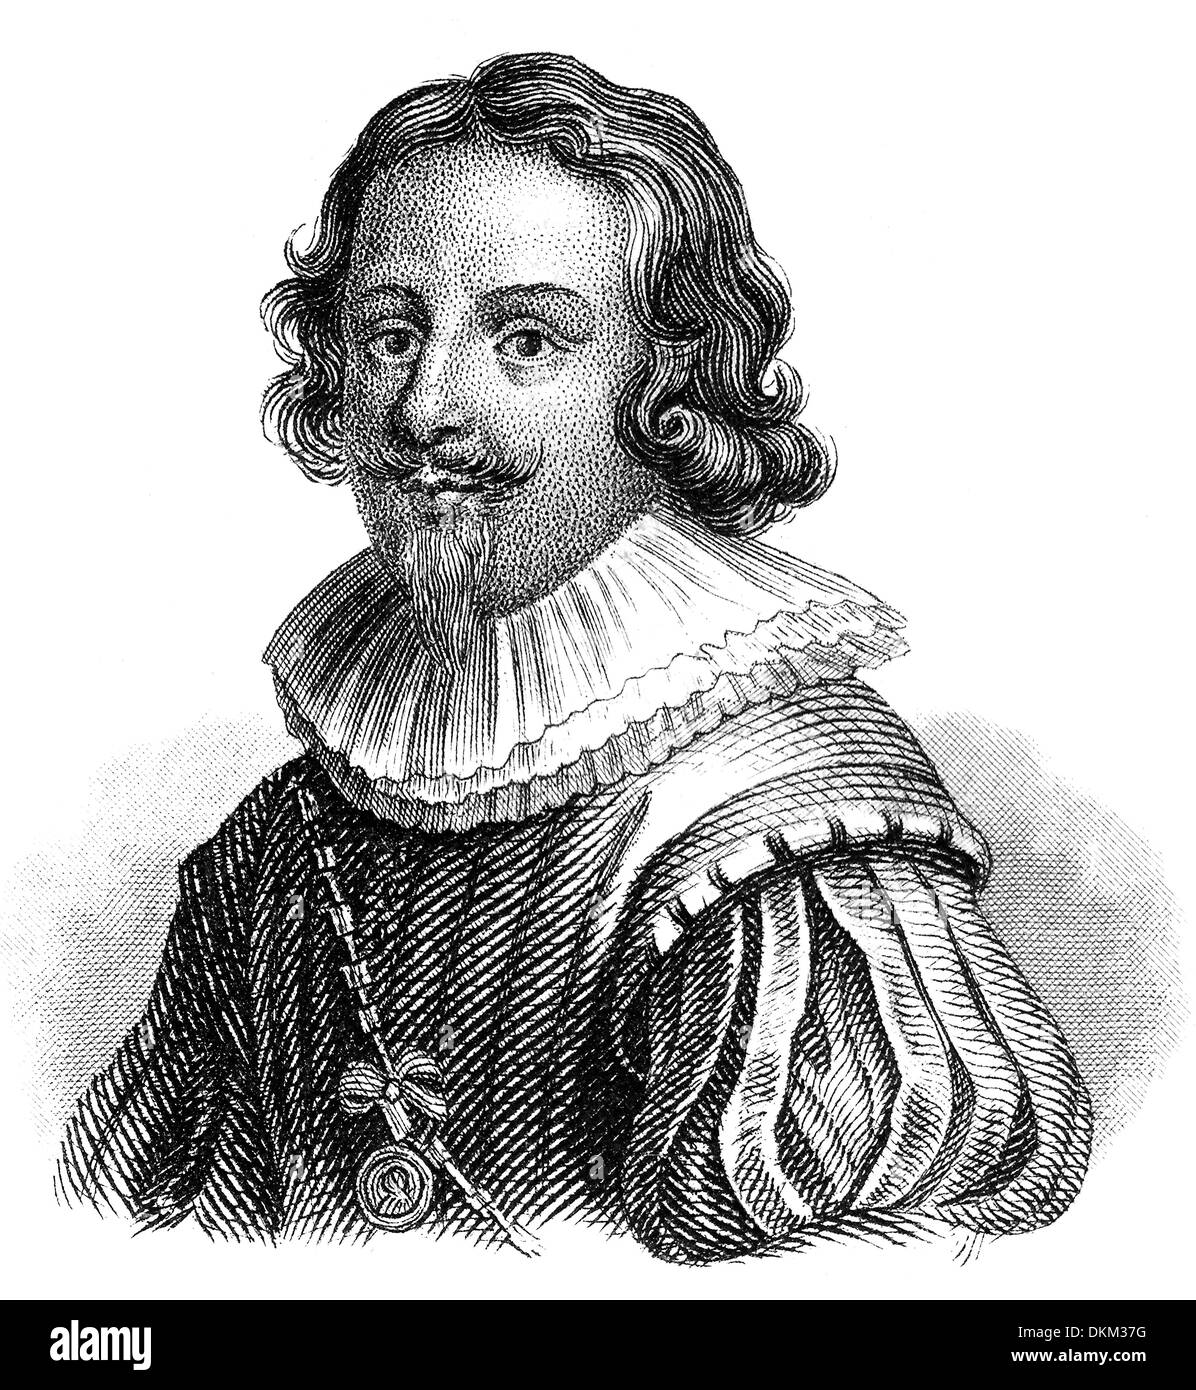 Portrait of Jacques Callot, 1592 - 1635, a baroque printmaker and draftsman from the Duchy of Lorraine Stock Photo